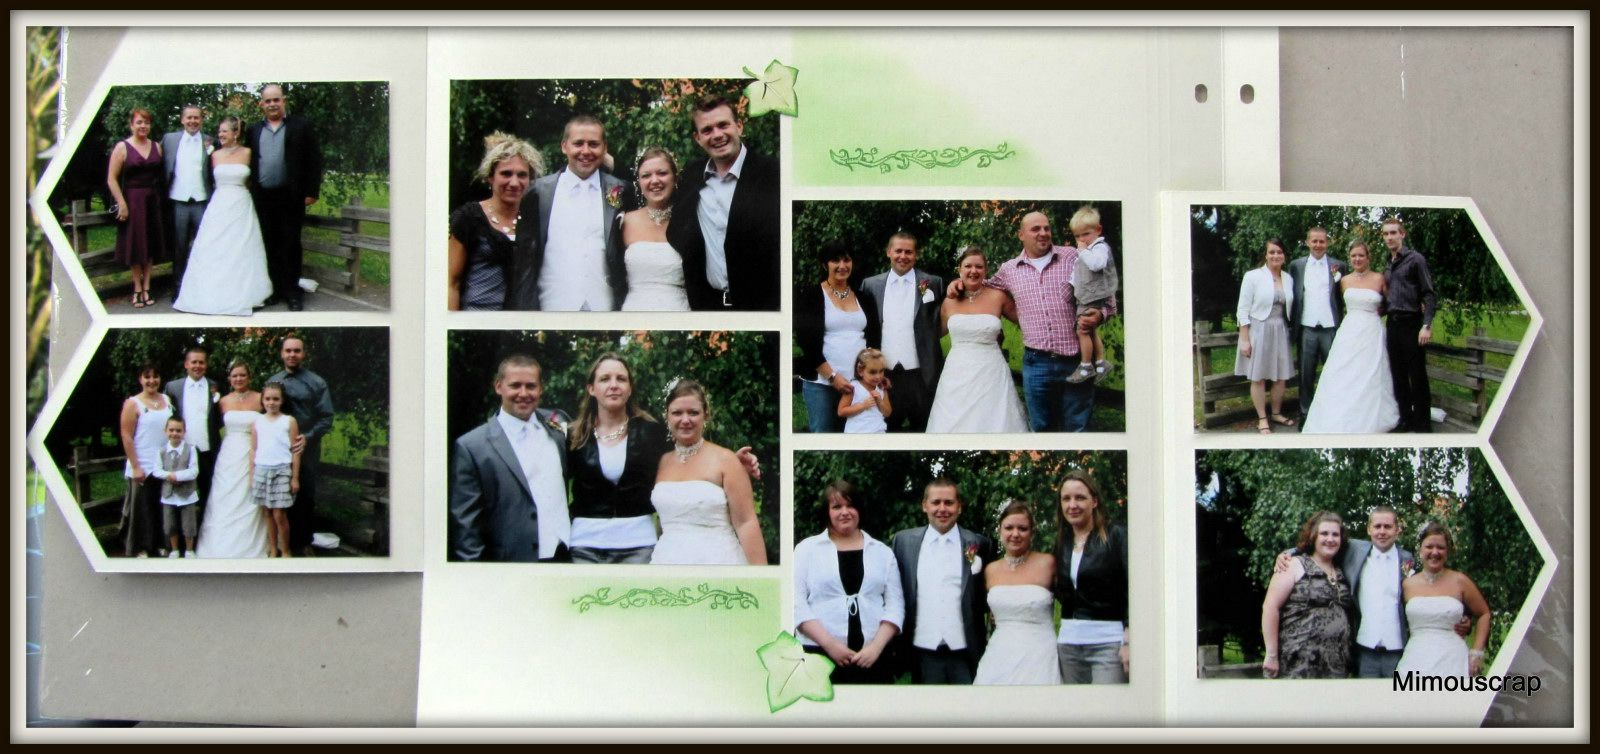 mariage photos avec la famille le scrap europ en de mimouscrap. Black Bedroom Furniture Sets. Home Design Ideas